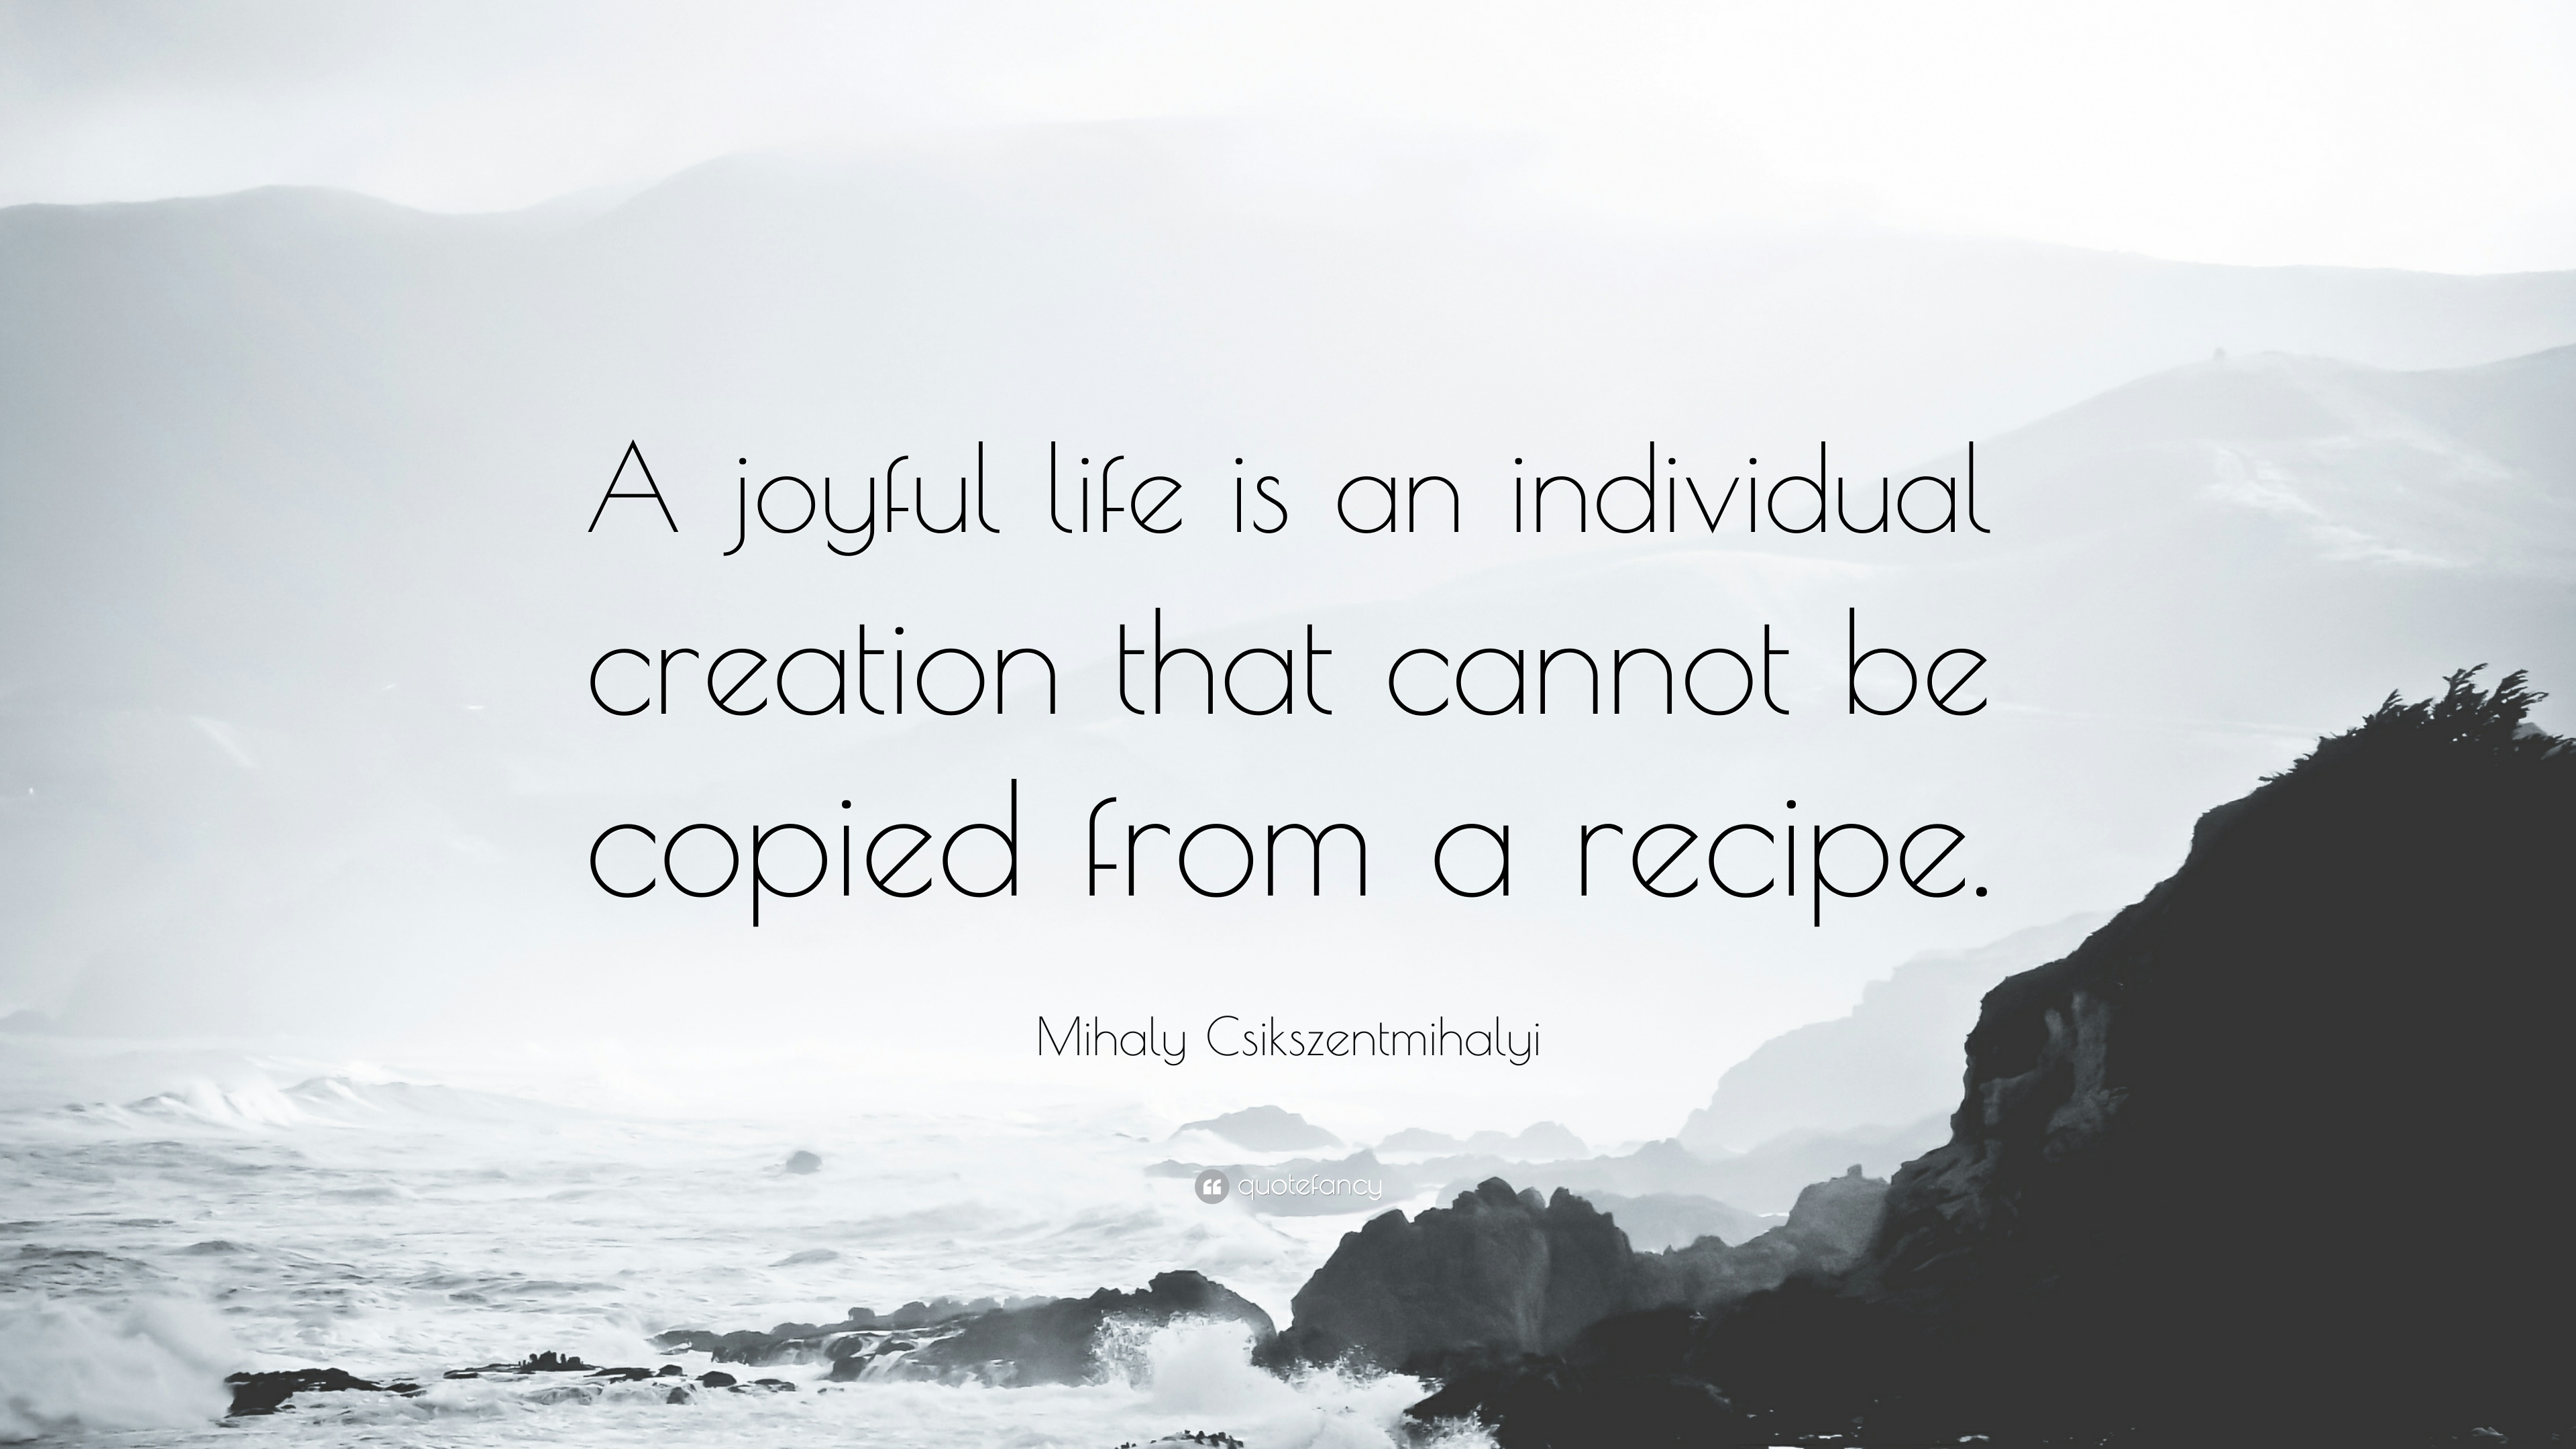 607731-Mihaly-Csikszentmihalyi-Quote-A-joyful-life-is-an-individual.jpg